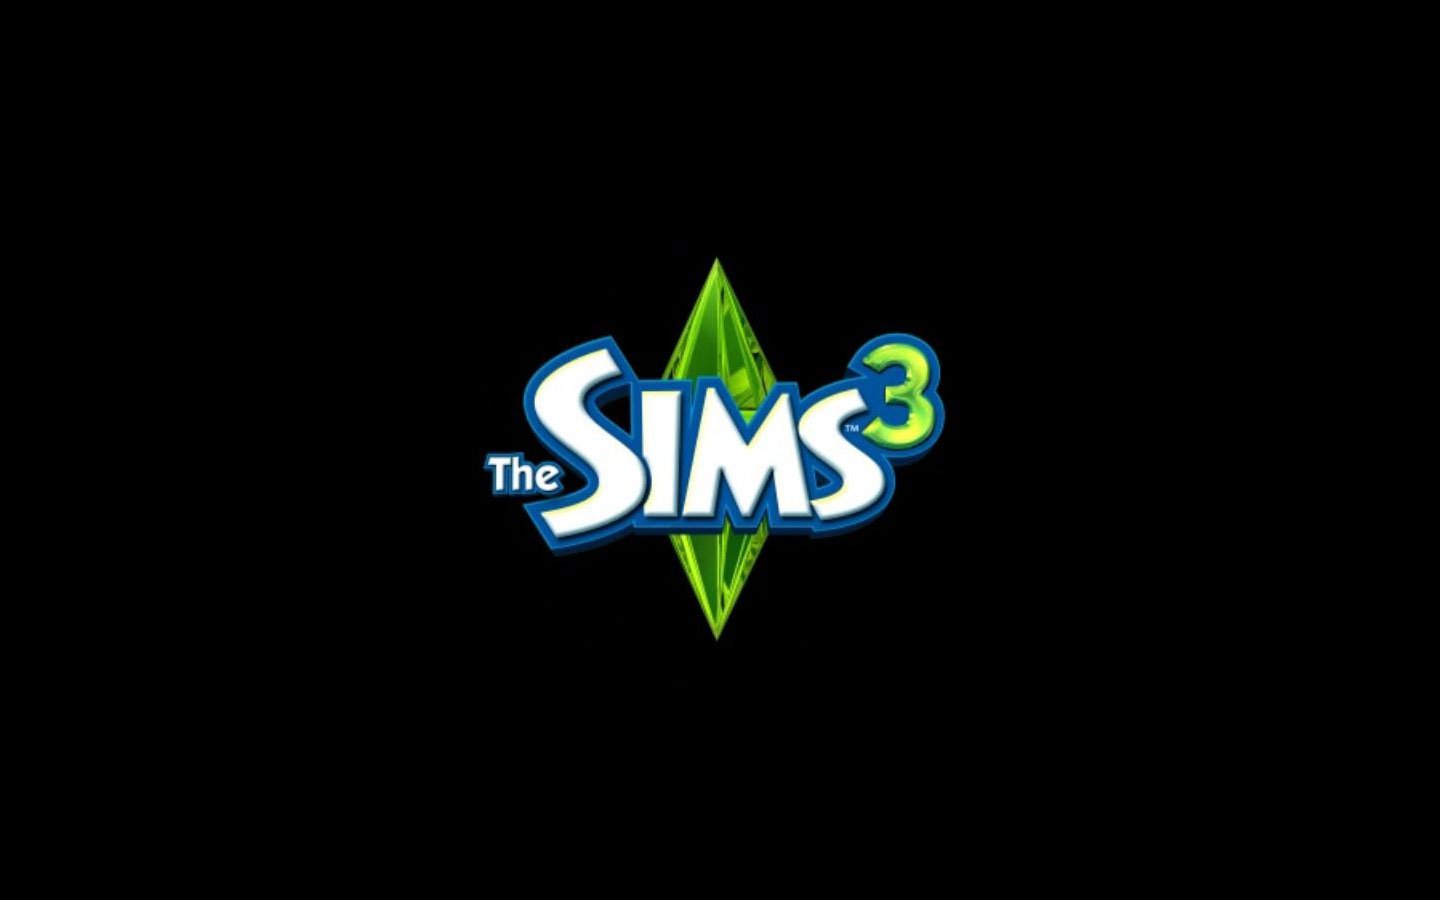 Free Download Wallpapers The Sims 3 Wallpaper 1440x900 For